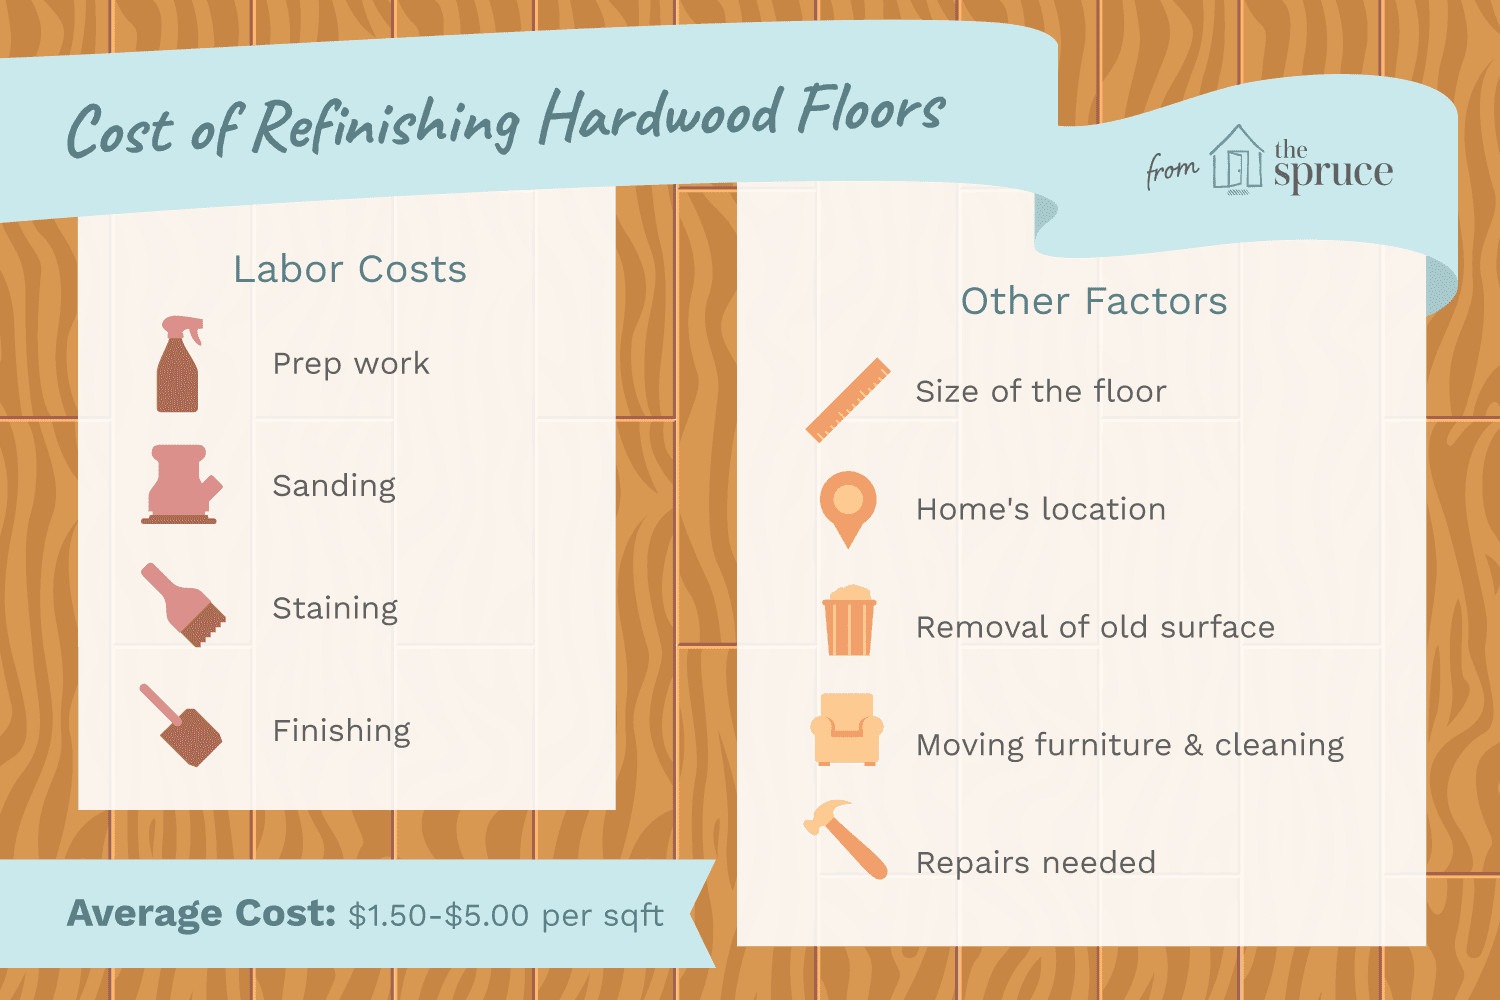 refinishing hardwood floors yourself of the cost to refinish hardwood floors with cost to refinish hardwood floors 1314853 final 5bb6259346e0fb0026825ce2